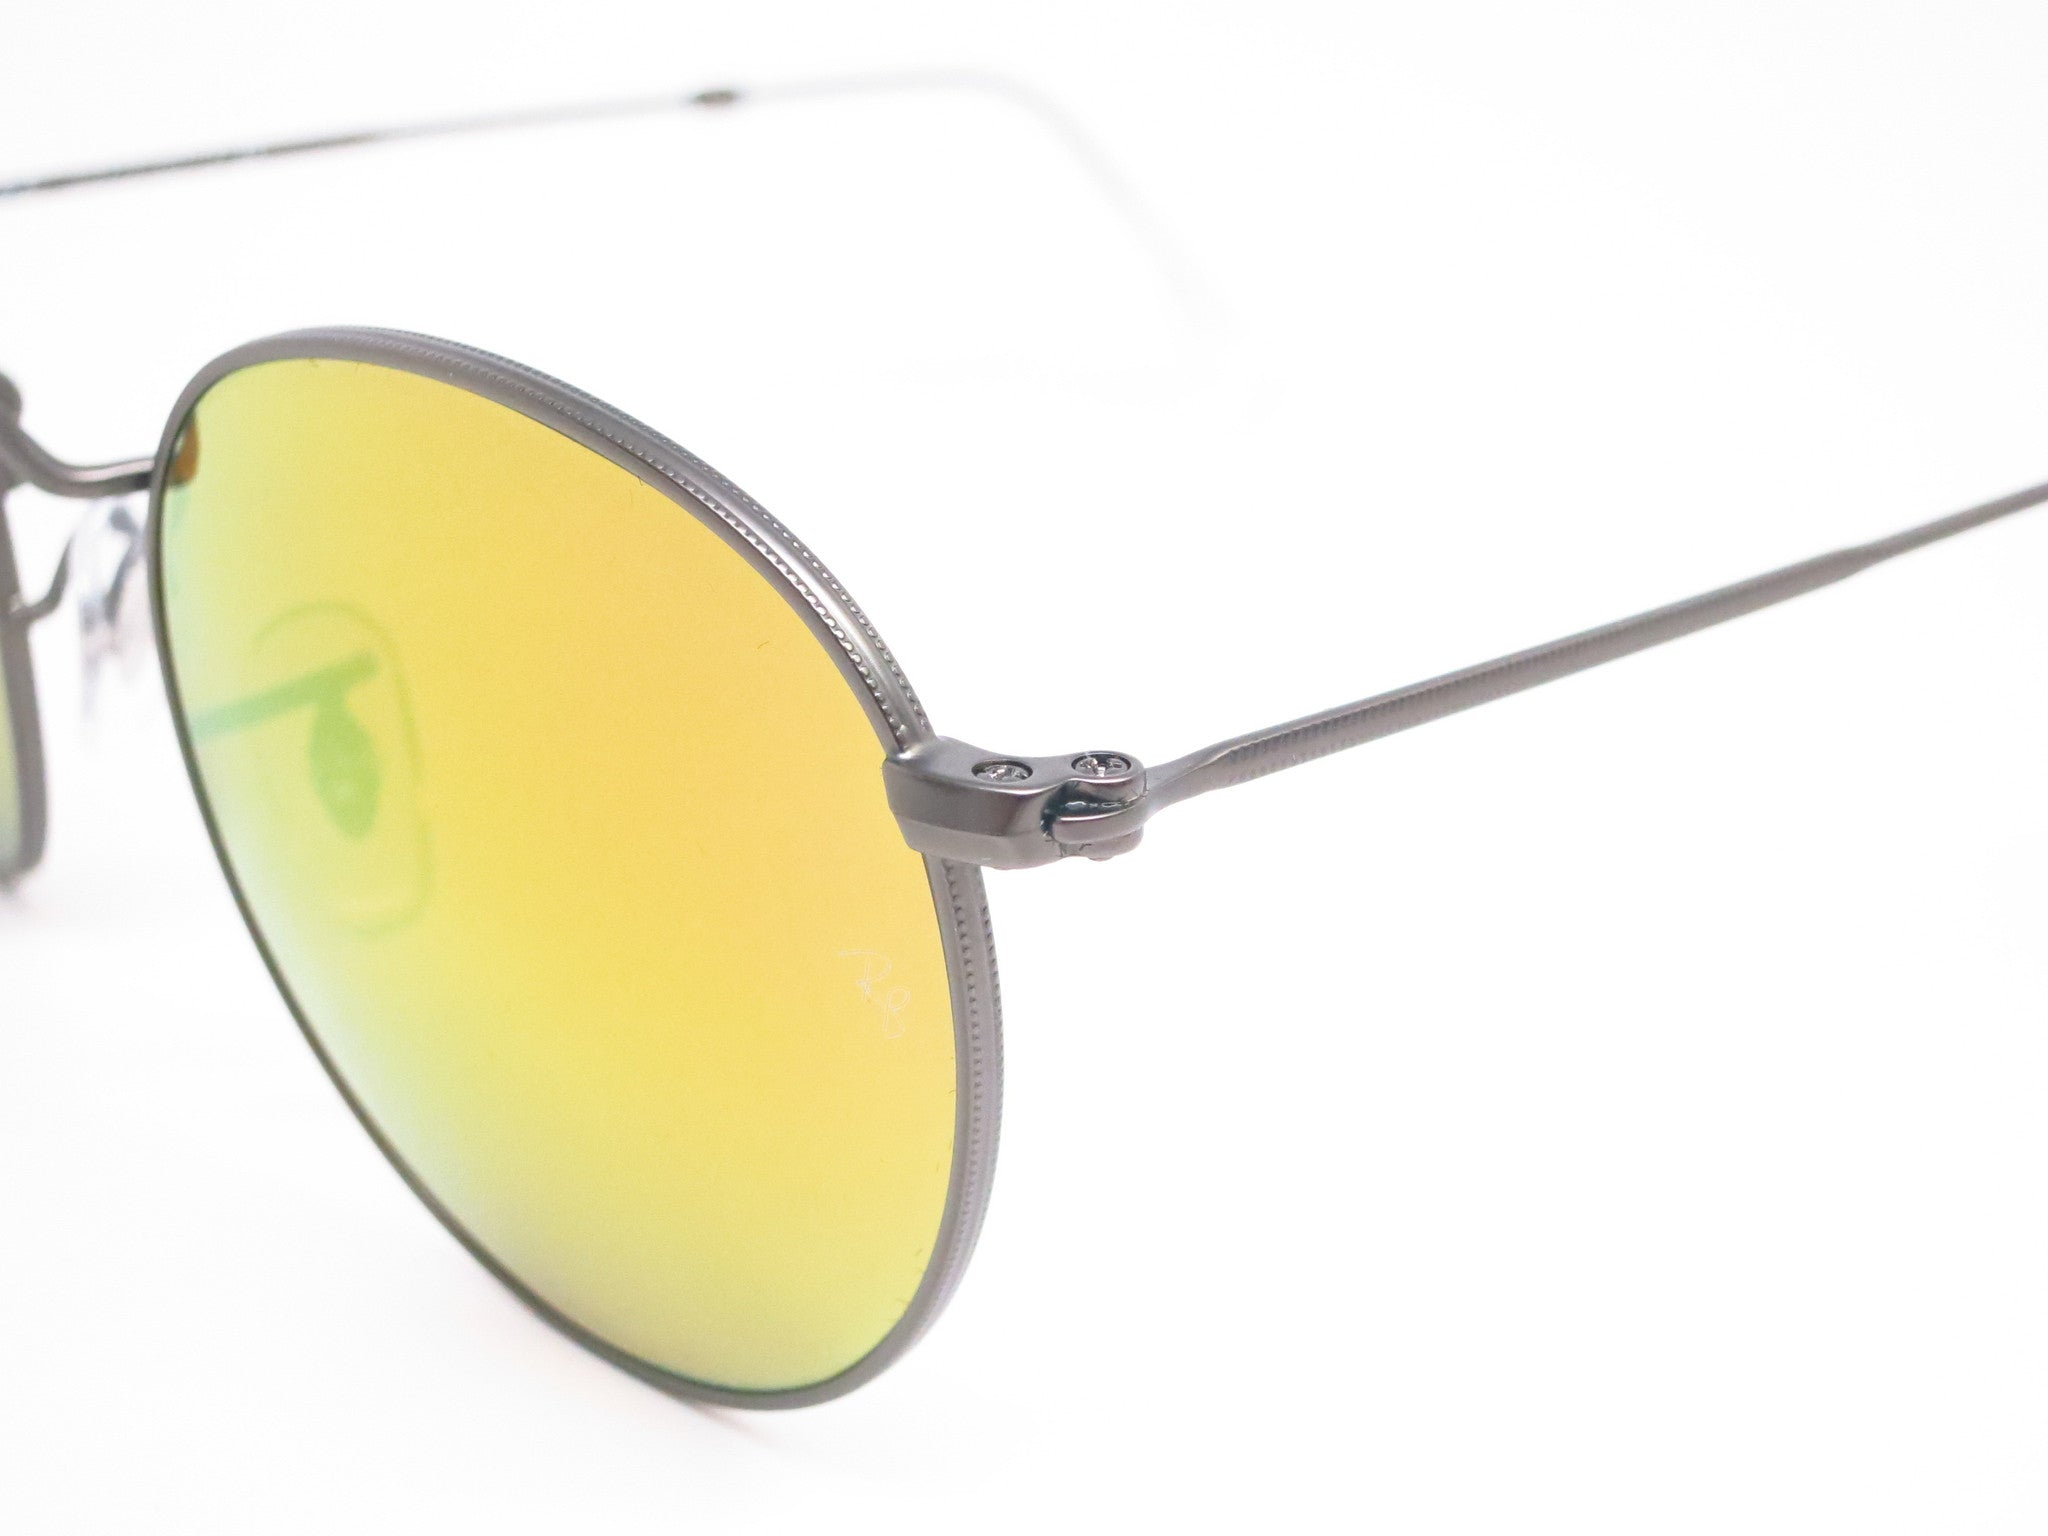 34749323f8 ... Ray-Ban RB 3447 Round Metal 029 93 Matte Gunmetal Sunglasses - Eye  Heart ...